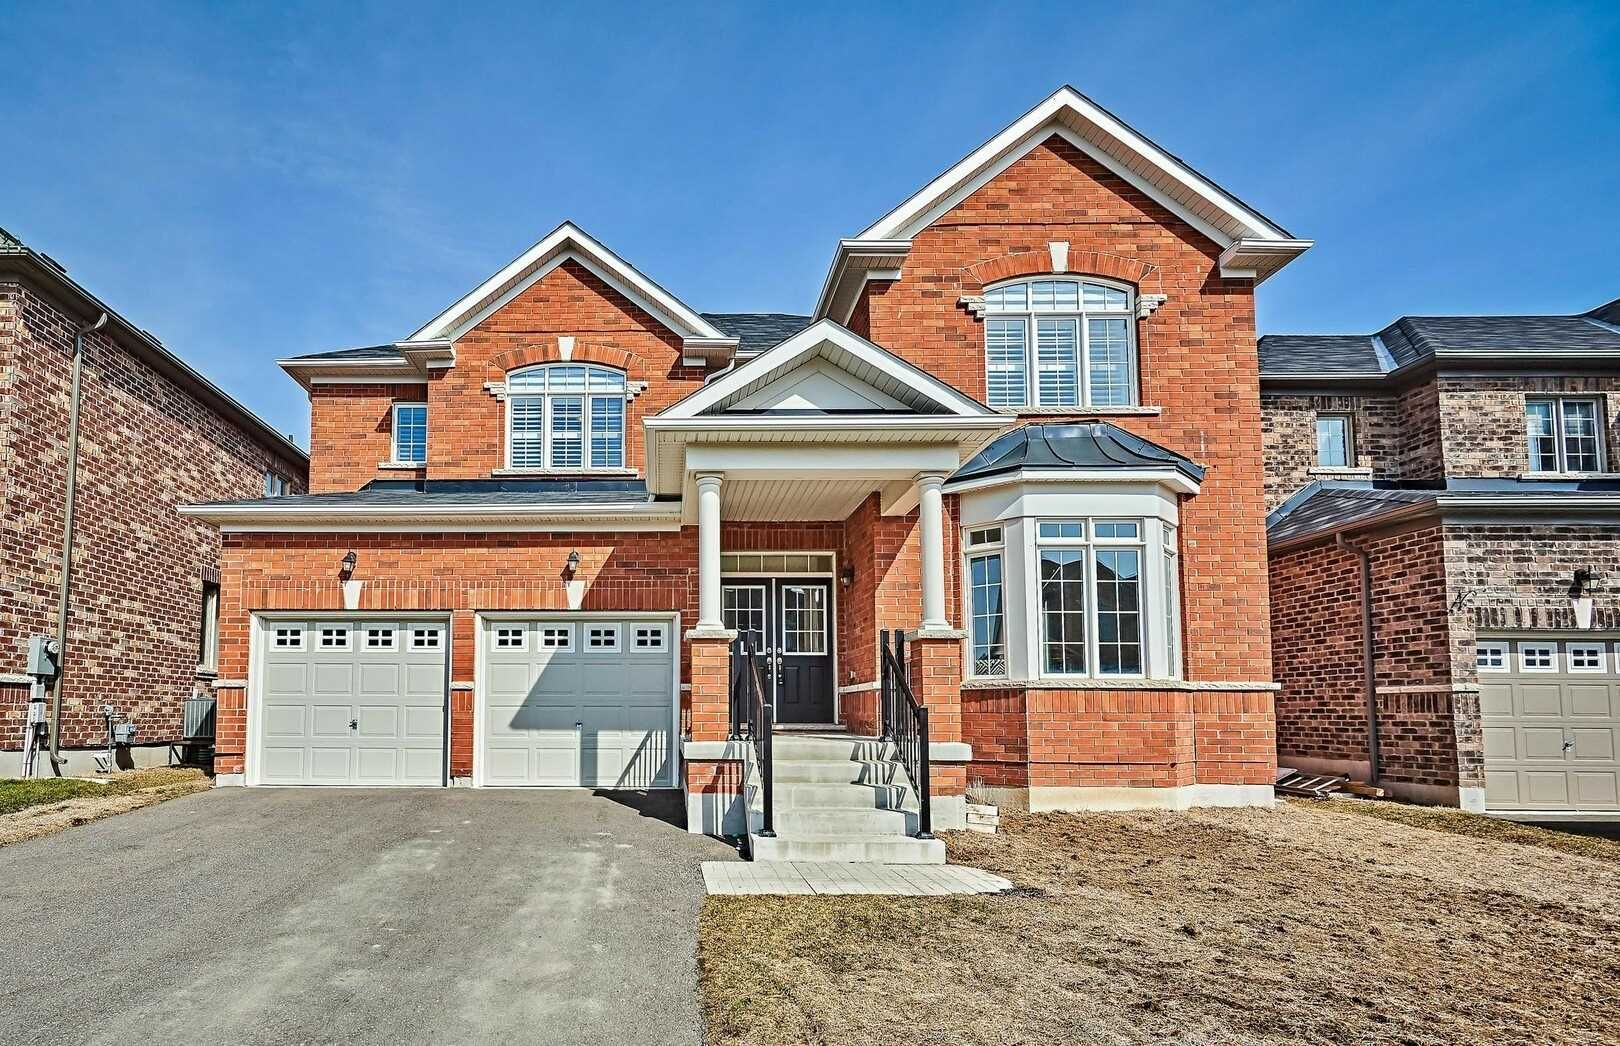 Main Photo: 11 Whitehand Drive in Clarington: Newcastle House (2-Storey) for sale : MLS®# E5169146